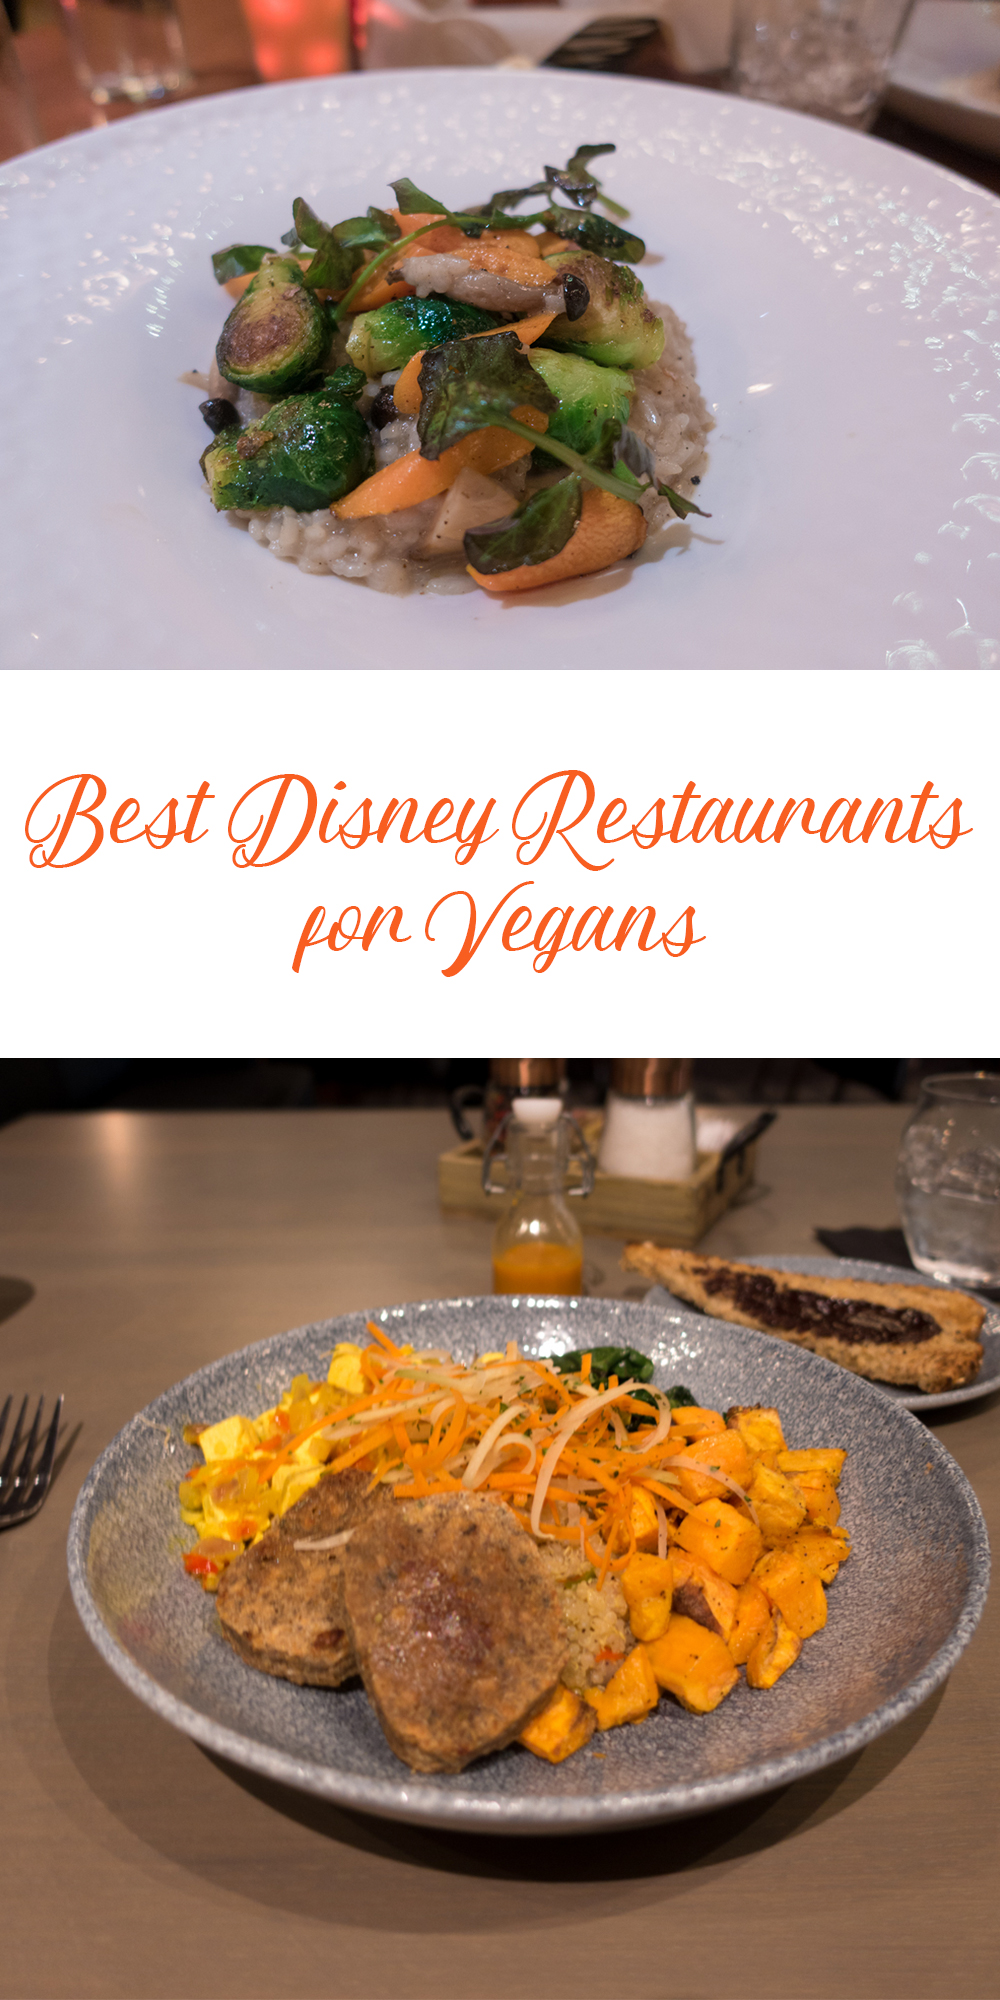 A guide to the Best Disney Restaurants for Vegans. #vegan #disneyworld